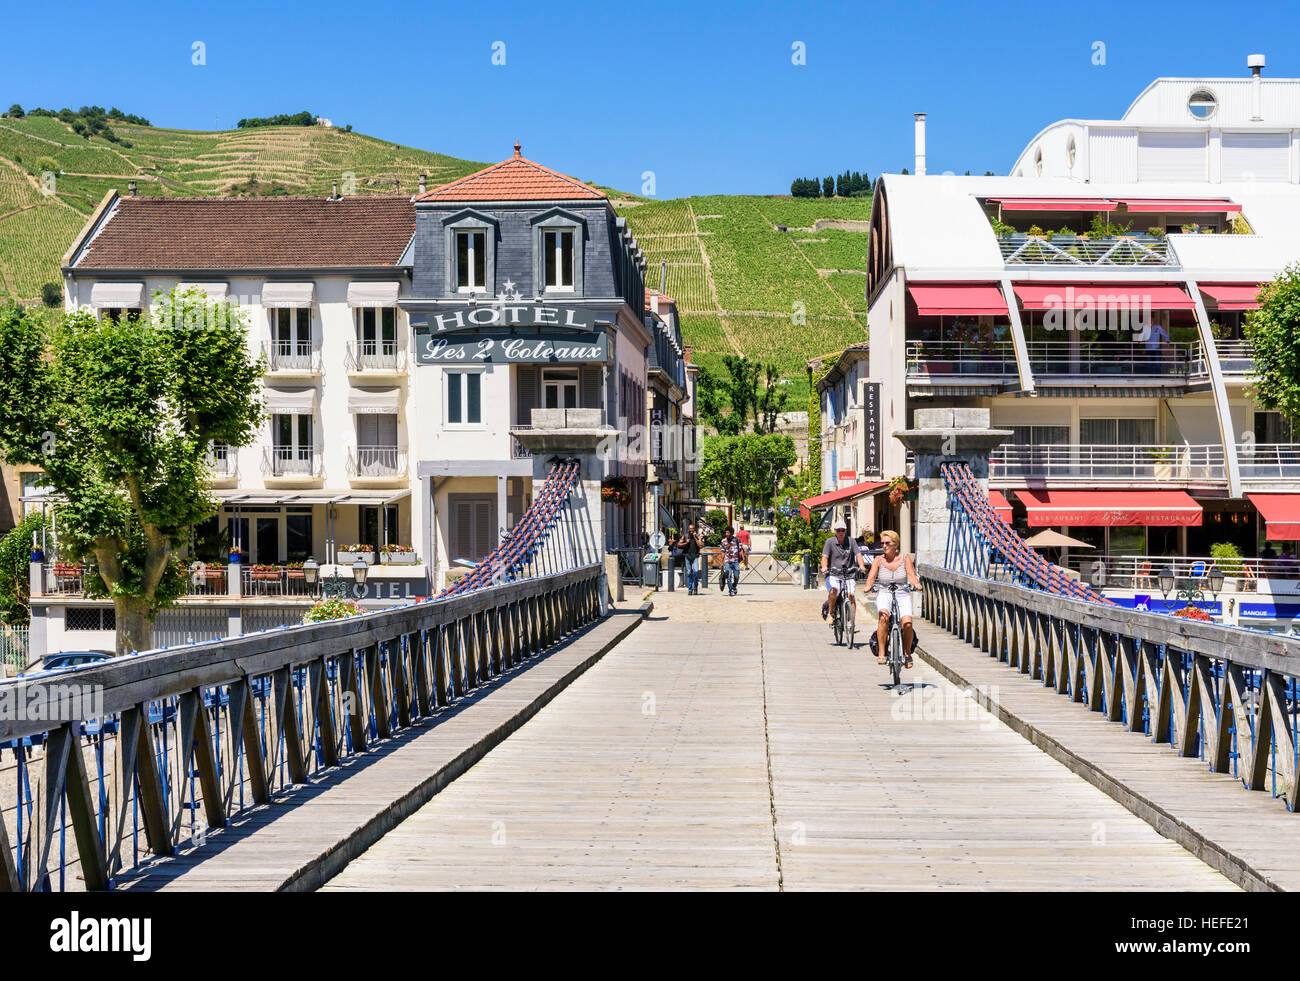 The Marc Seguin Bridge looking towards the town and vineyards of Tain-l'Hermitage, Drôme, Auvergne-Rhône - Stock Image